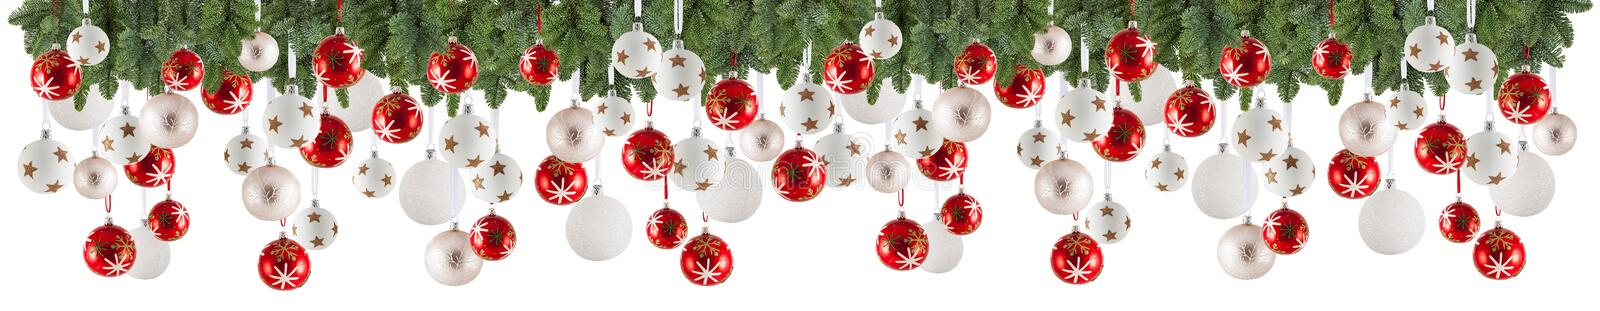 Christmas garland background with ornaments, christmas bauble royalty free stock photo